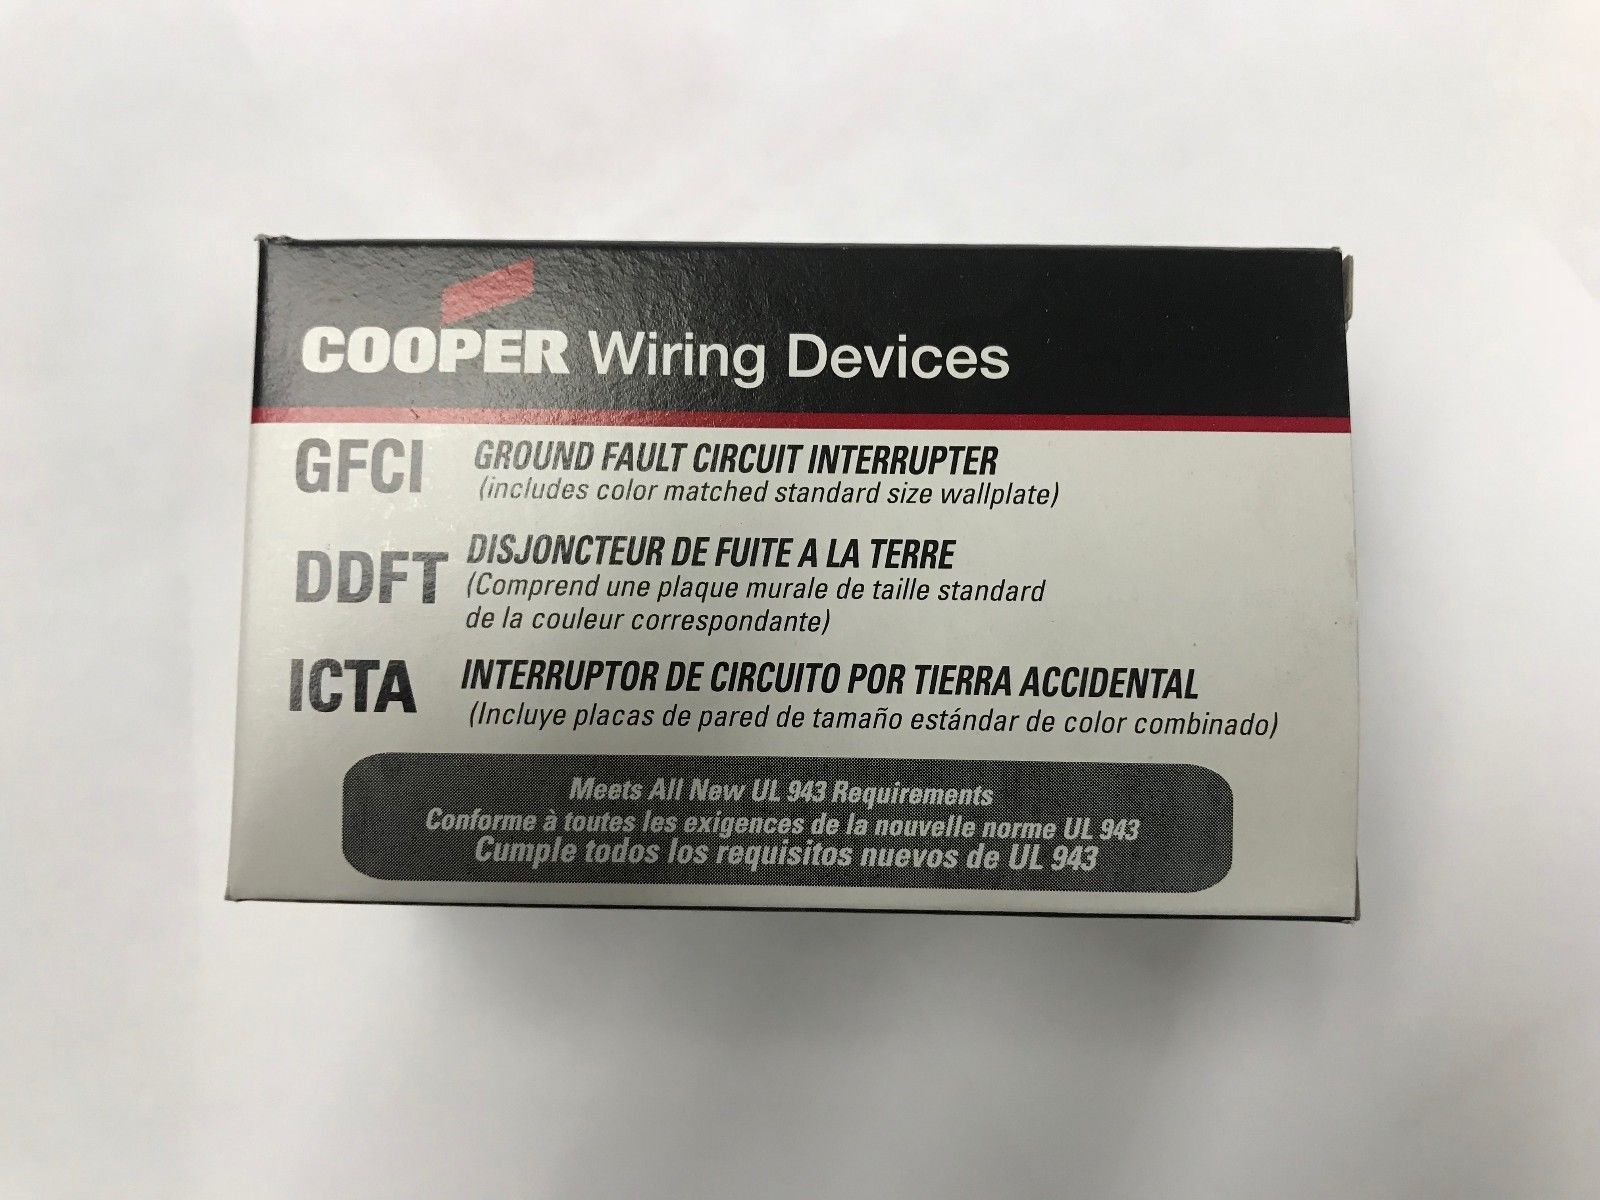 Cooper Wiring Vgf15fbk Gfci Decorator Duplex 15a 125v Black Nafta Equipped With Ground Fault Interrupter Gfi Outlets Or Circuit 57